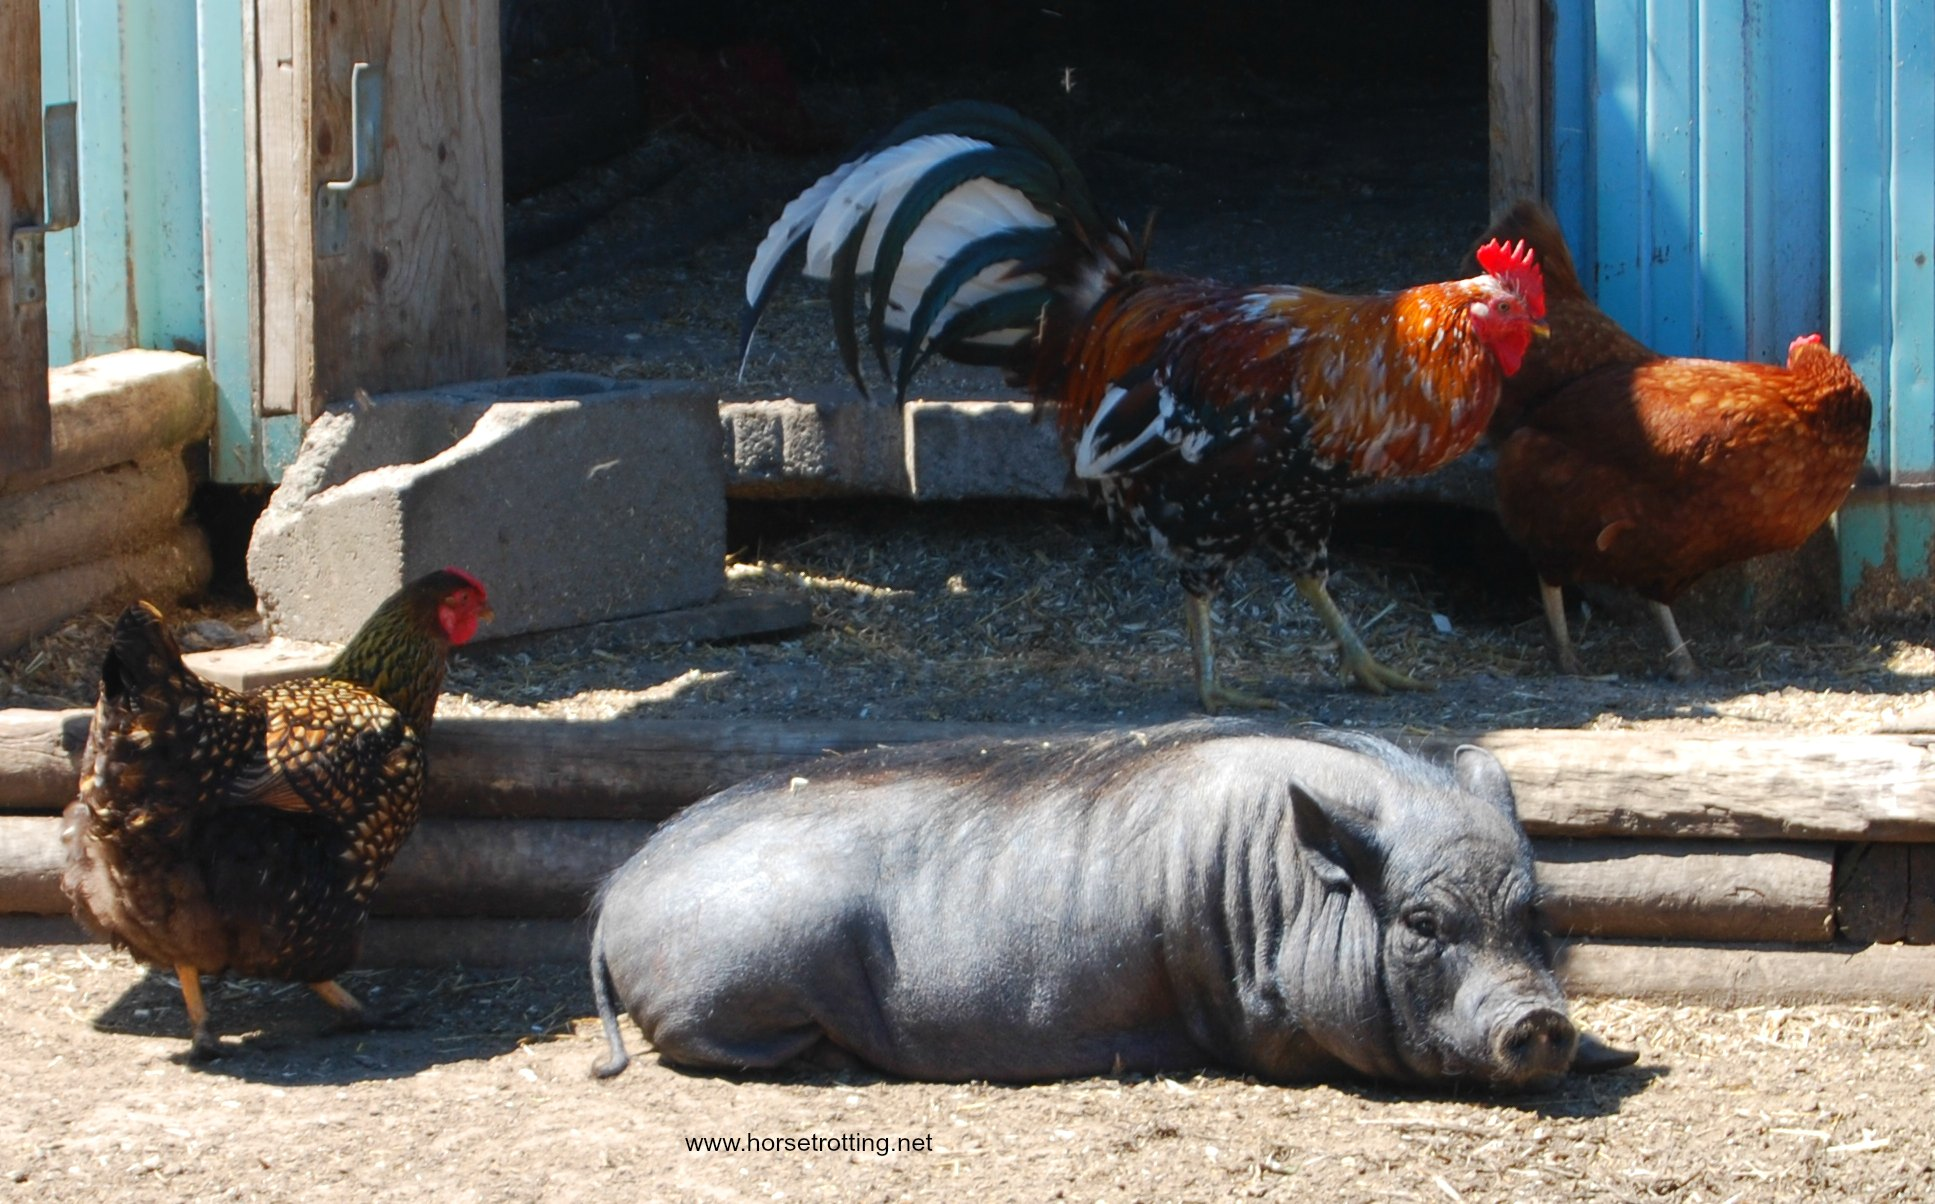 Potbellied pig and rosters at Ralphy's Resort Animal Sanctuary